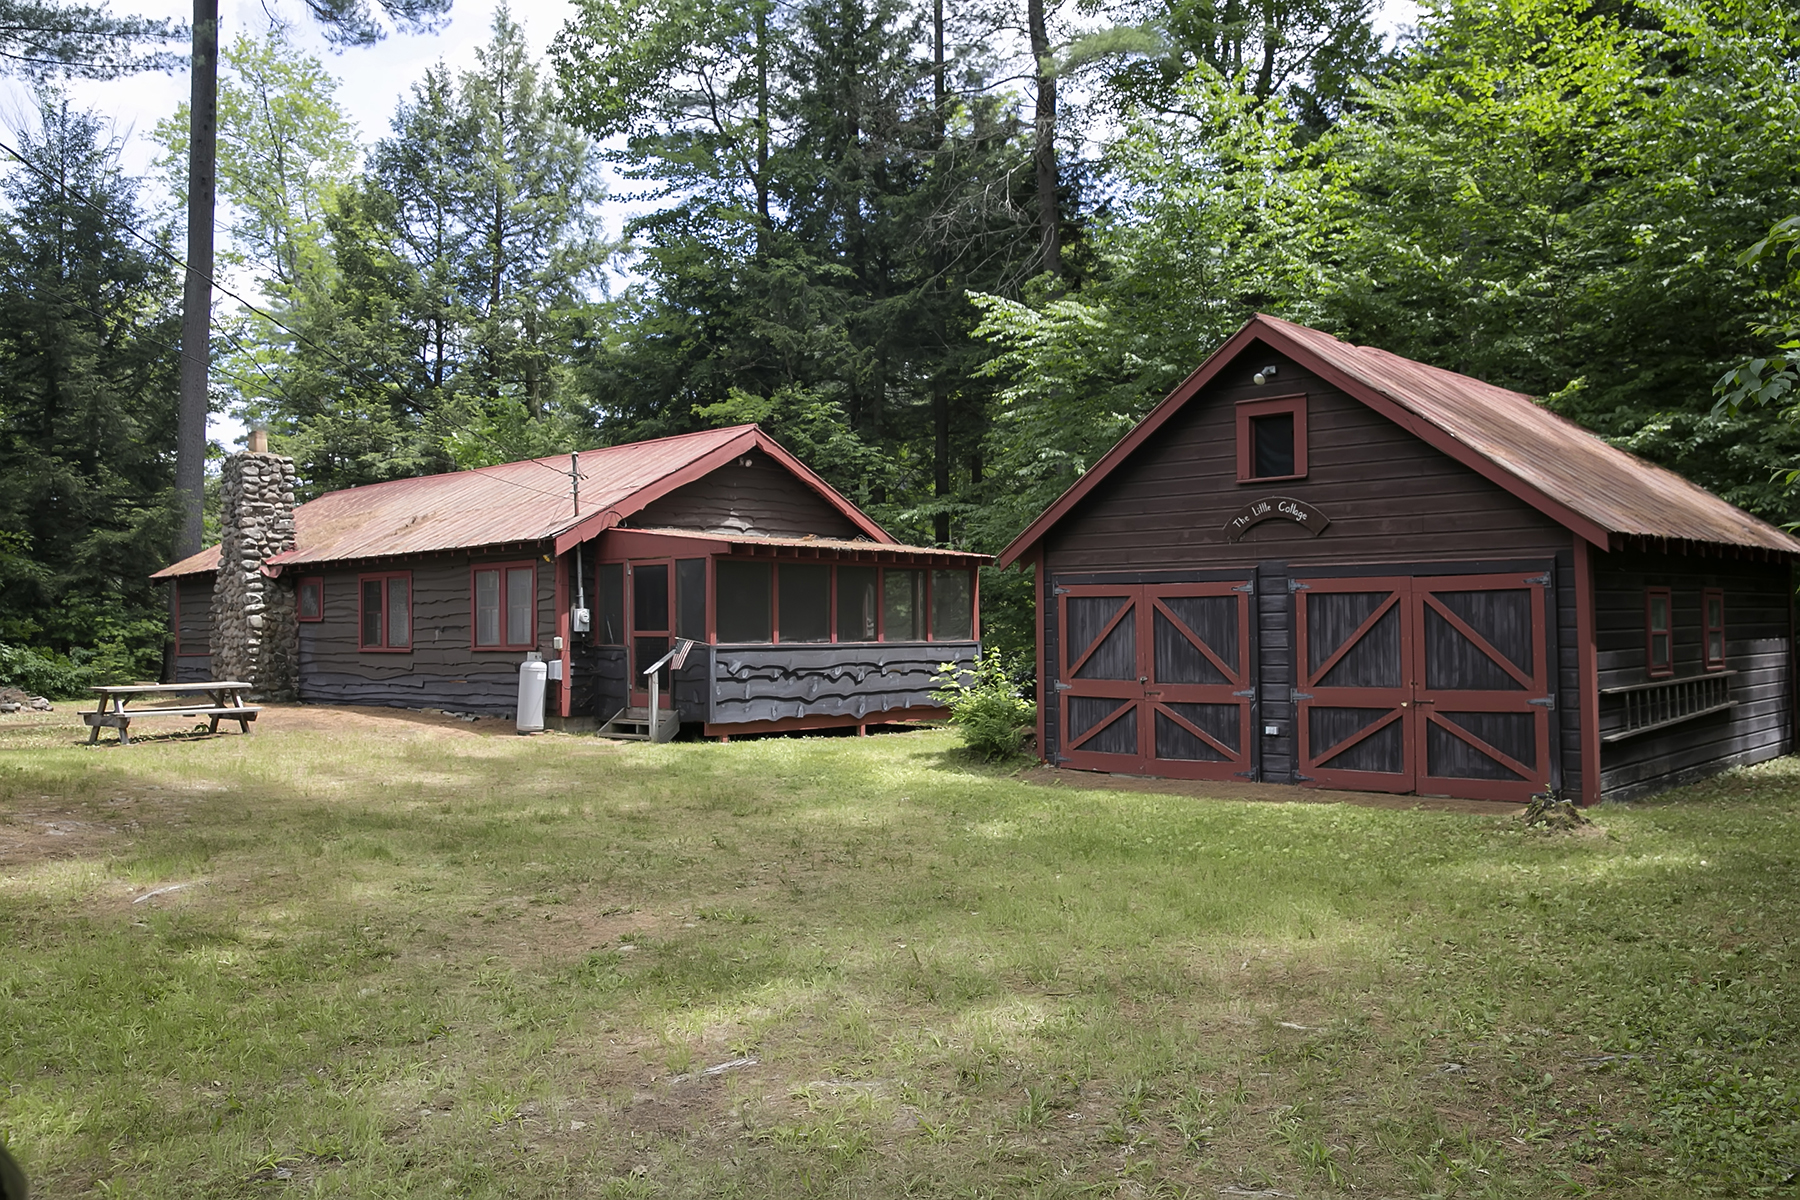 Single Family Home for Sale at Southern Adirondack Camp 9 Dead End Dr Lake Luzerne, New York 12846 United States